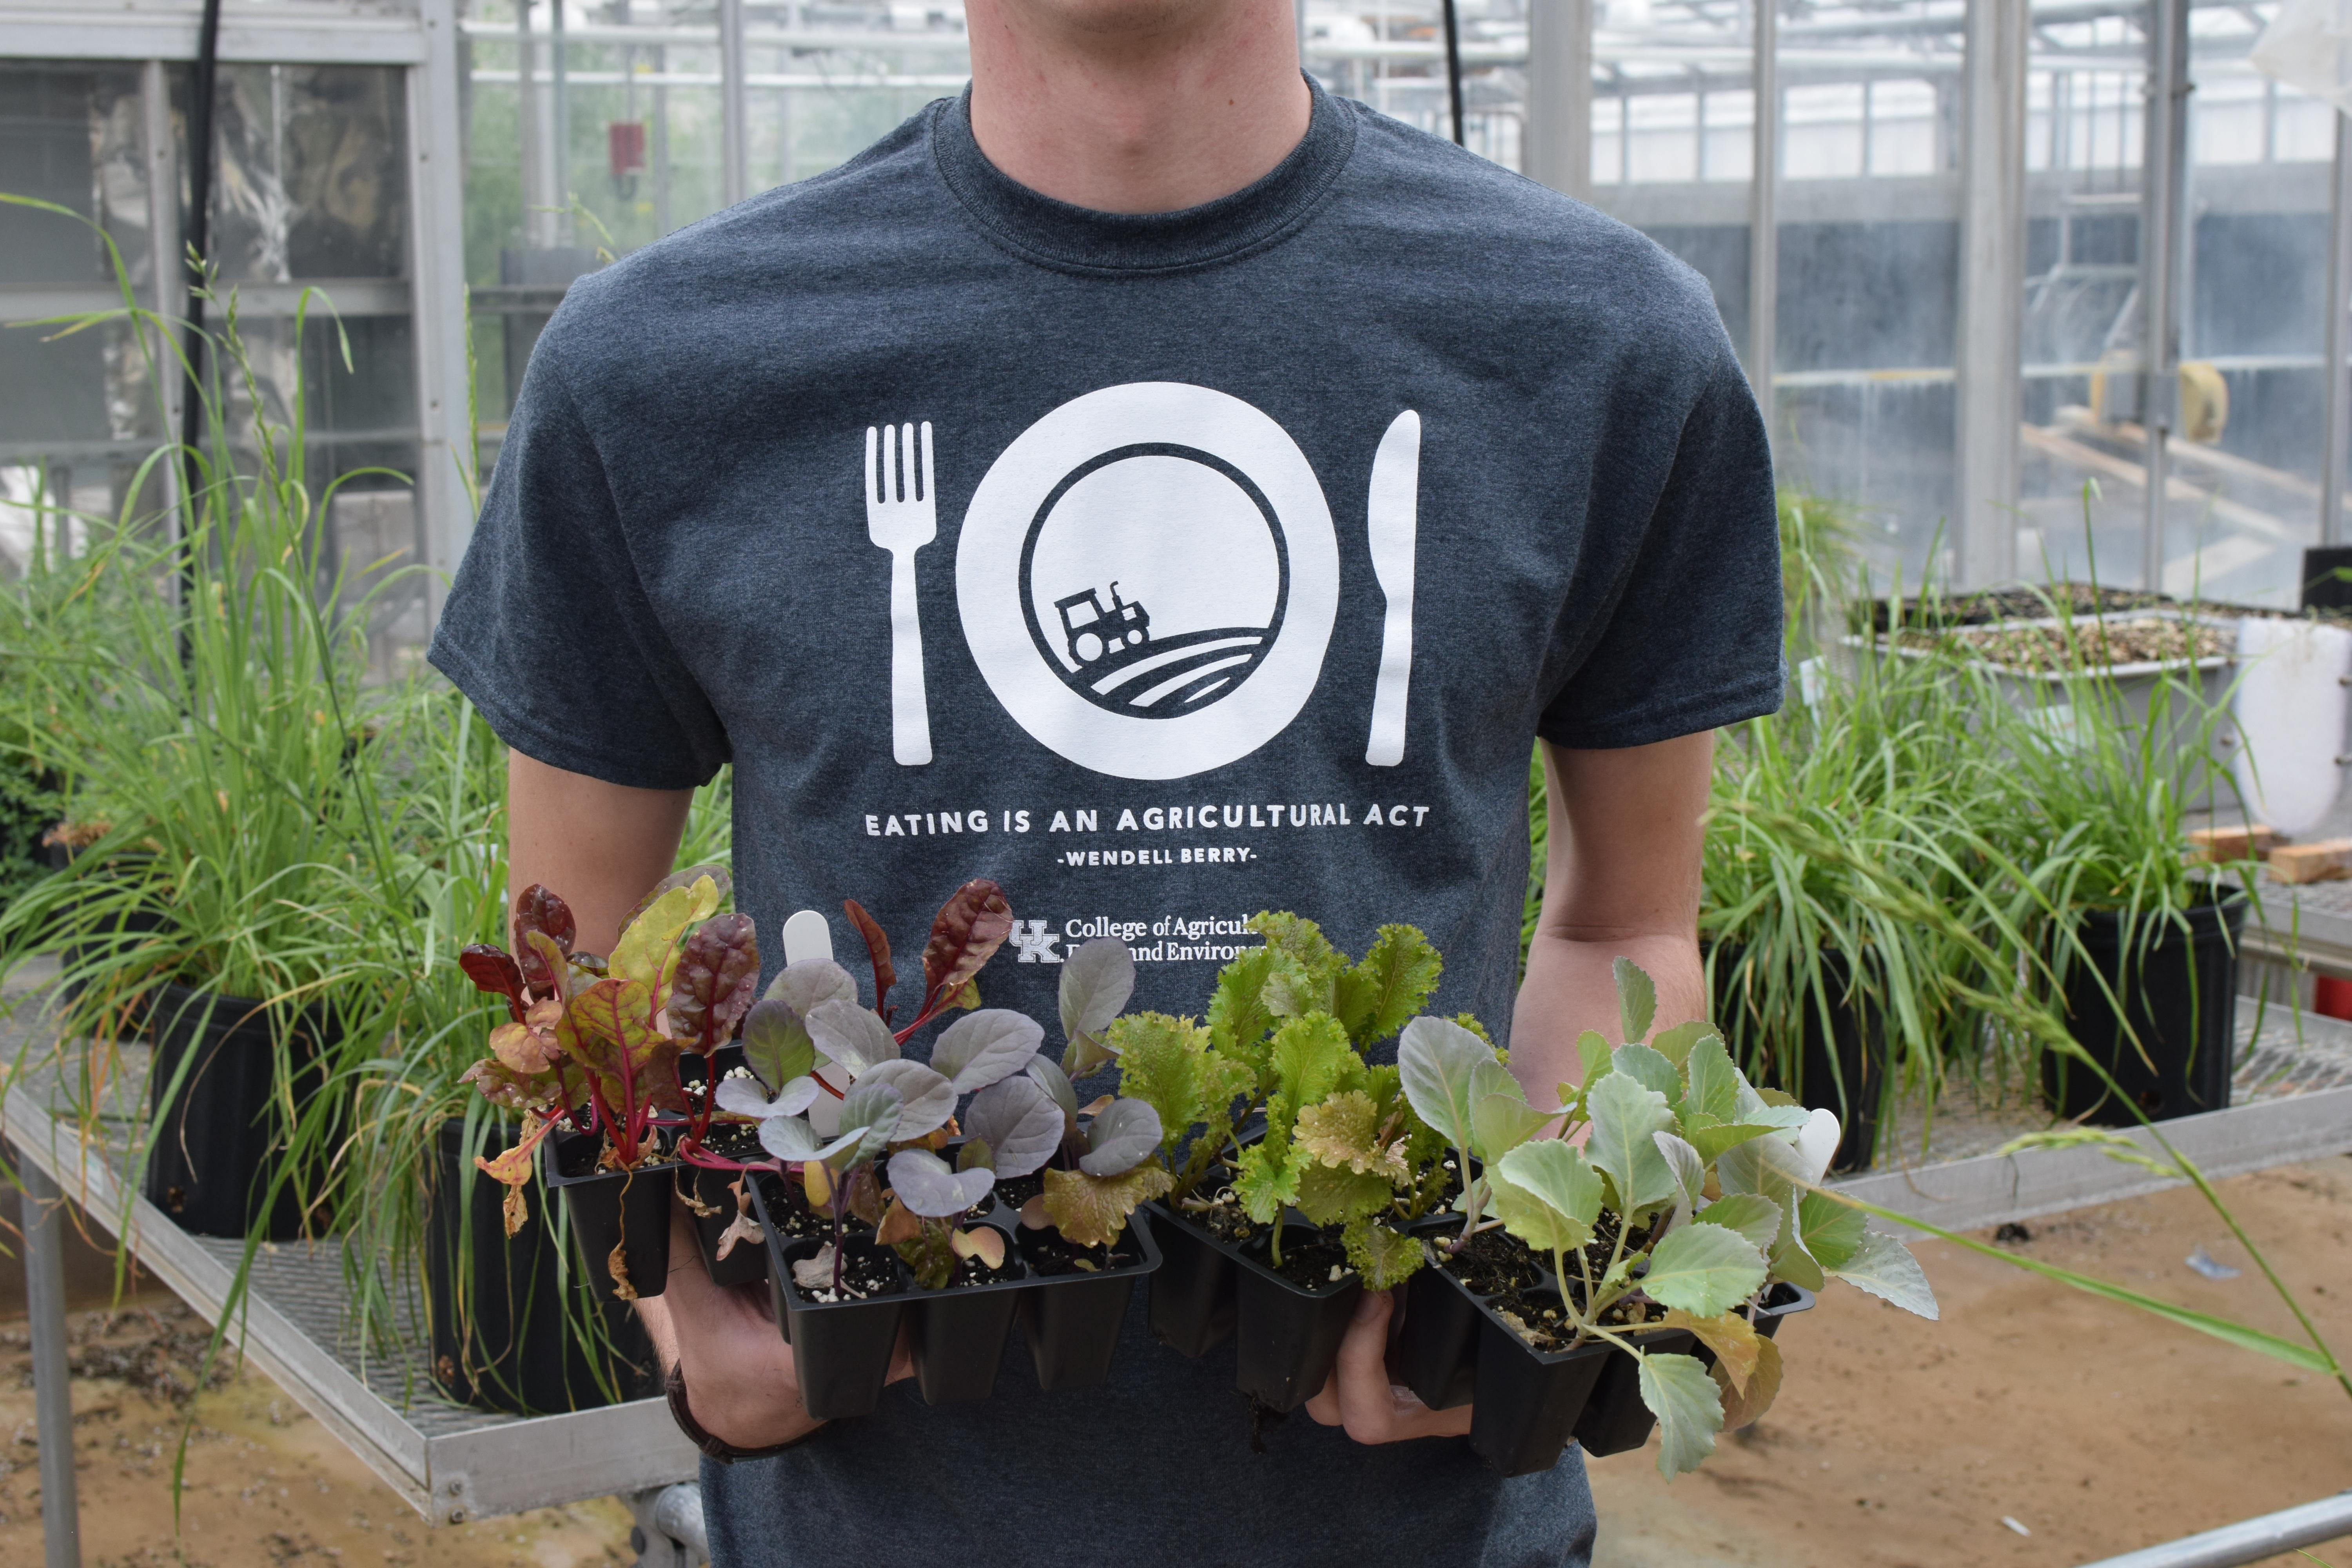 UK College of Agriculture, Food and Environment will celebrate Ag Awareness Day April 11. Photo provided by Seth Riker